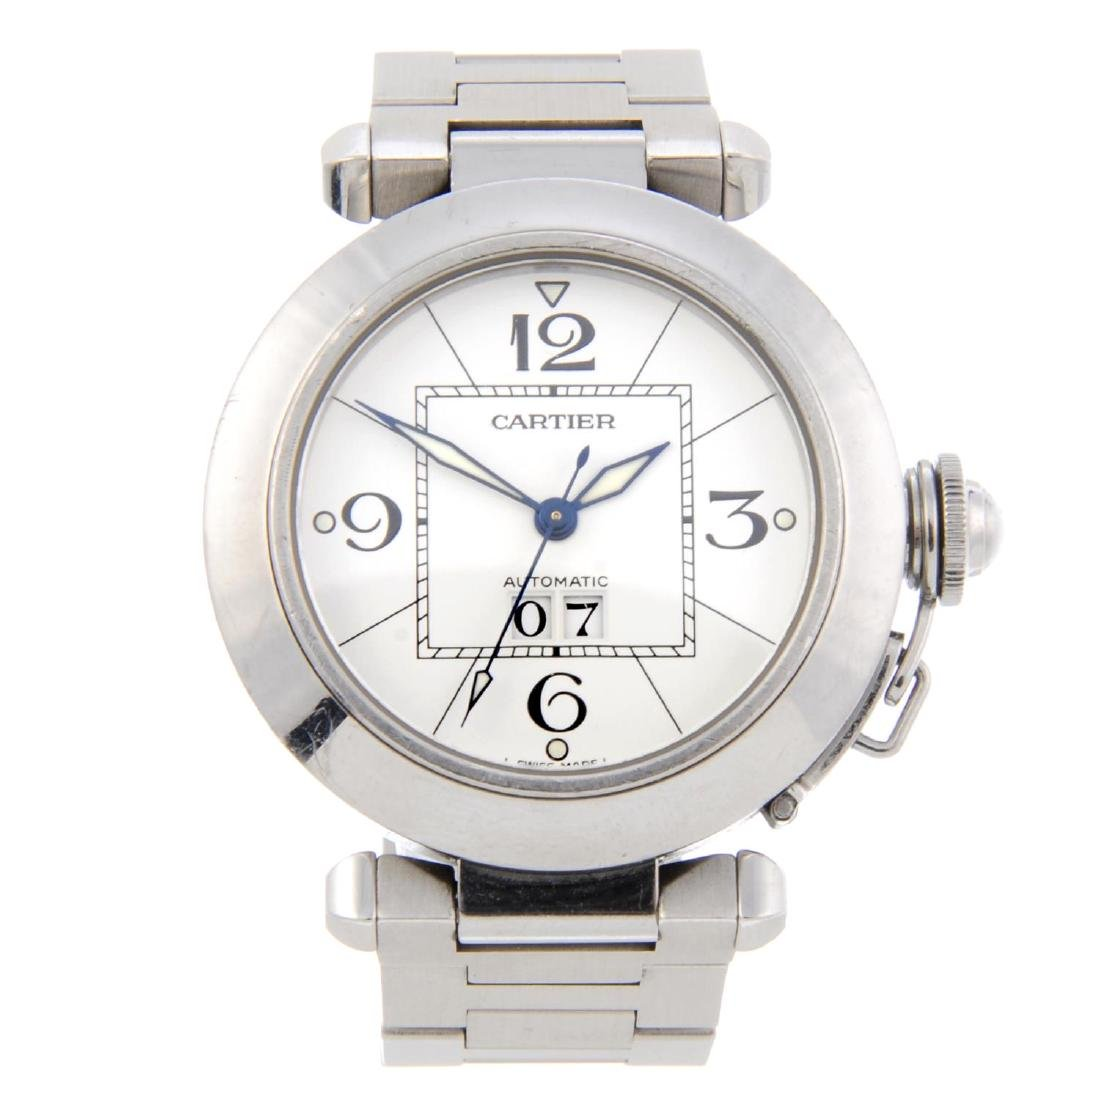 CARTIER - a Pasha bracelet watch. Stainless steel case.